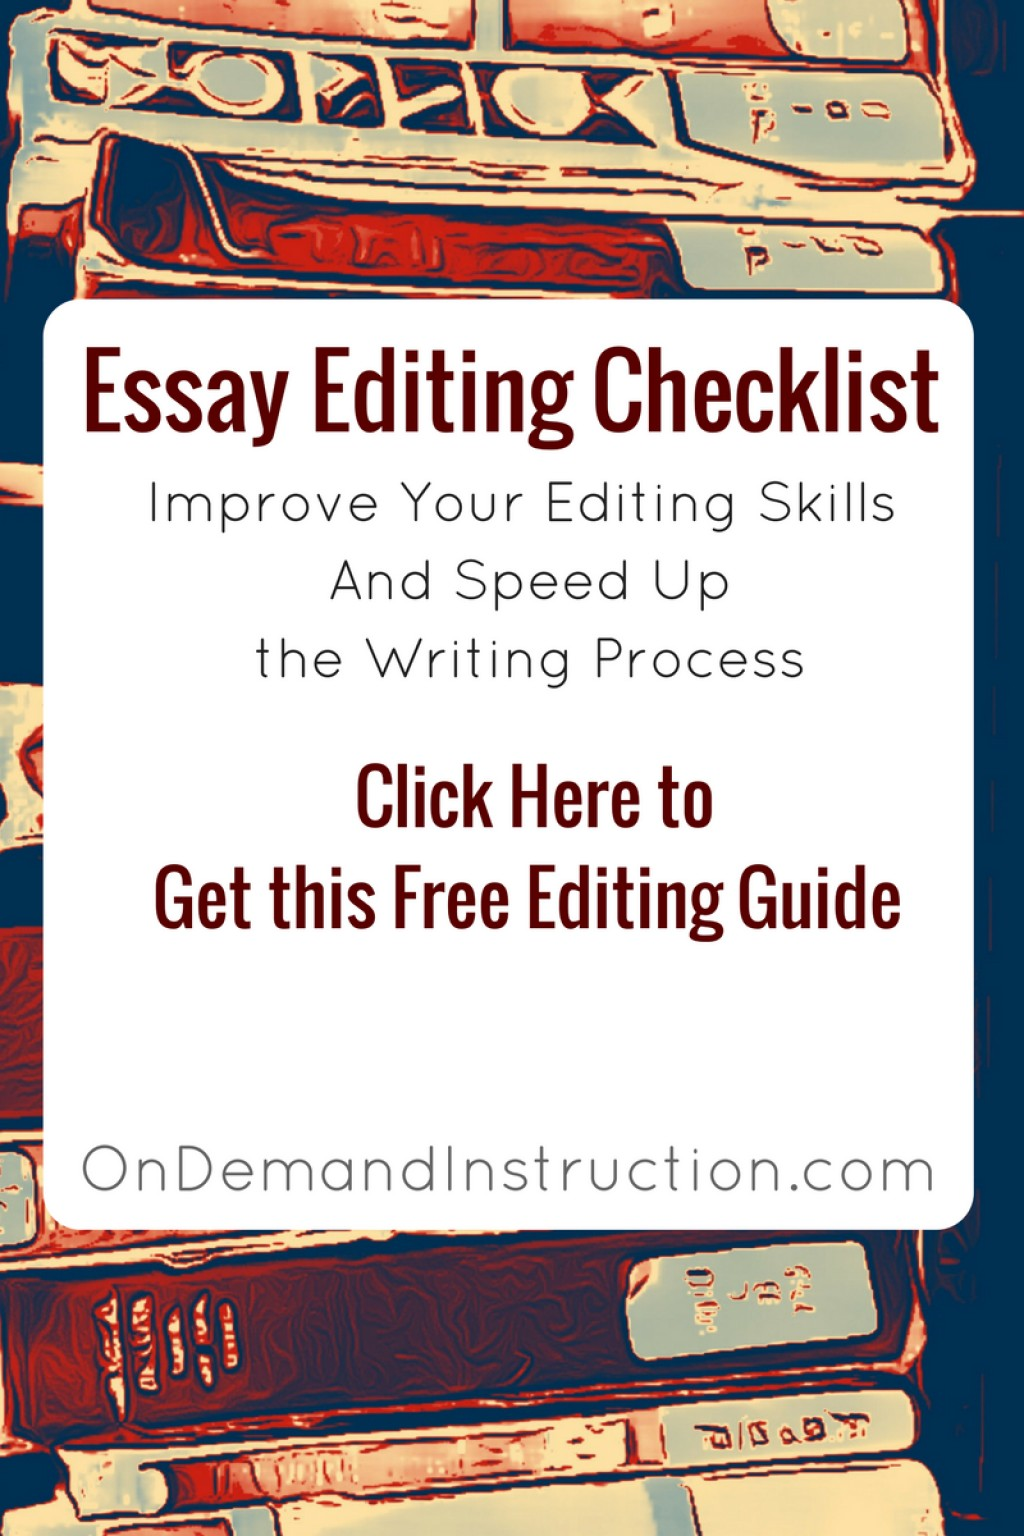 015 Essay Editor Example Marvelous Paper Jobs Reddit Freelance Large